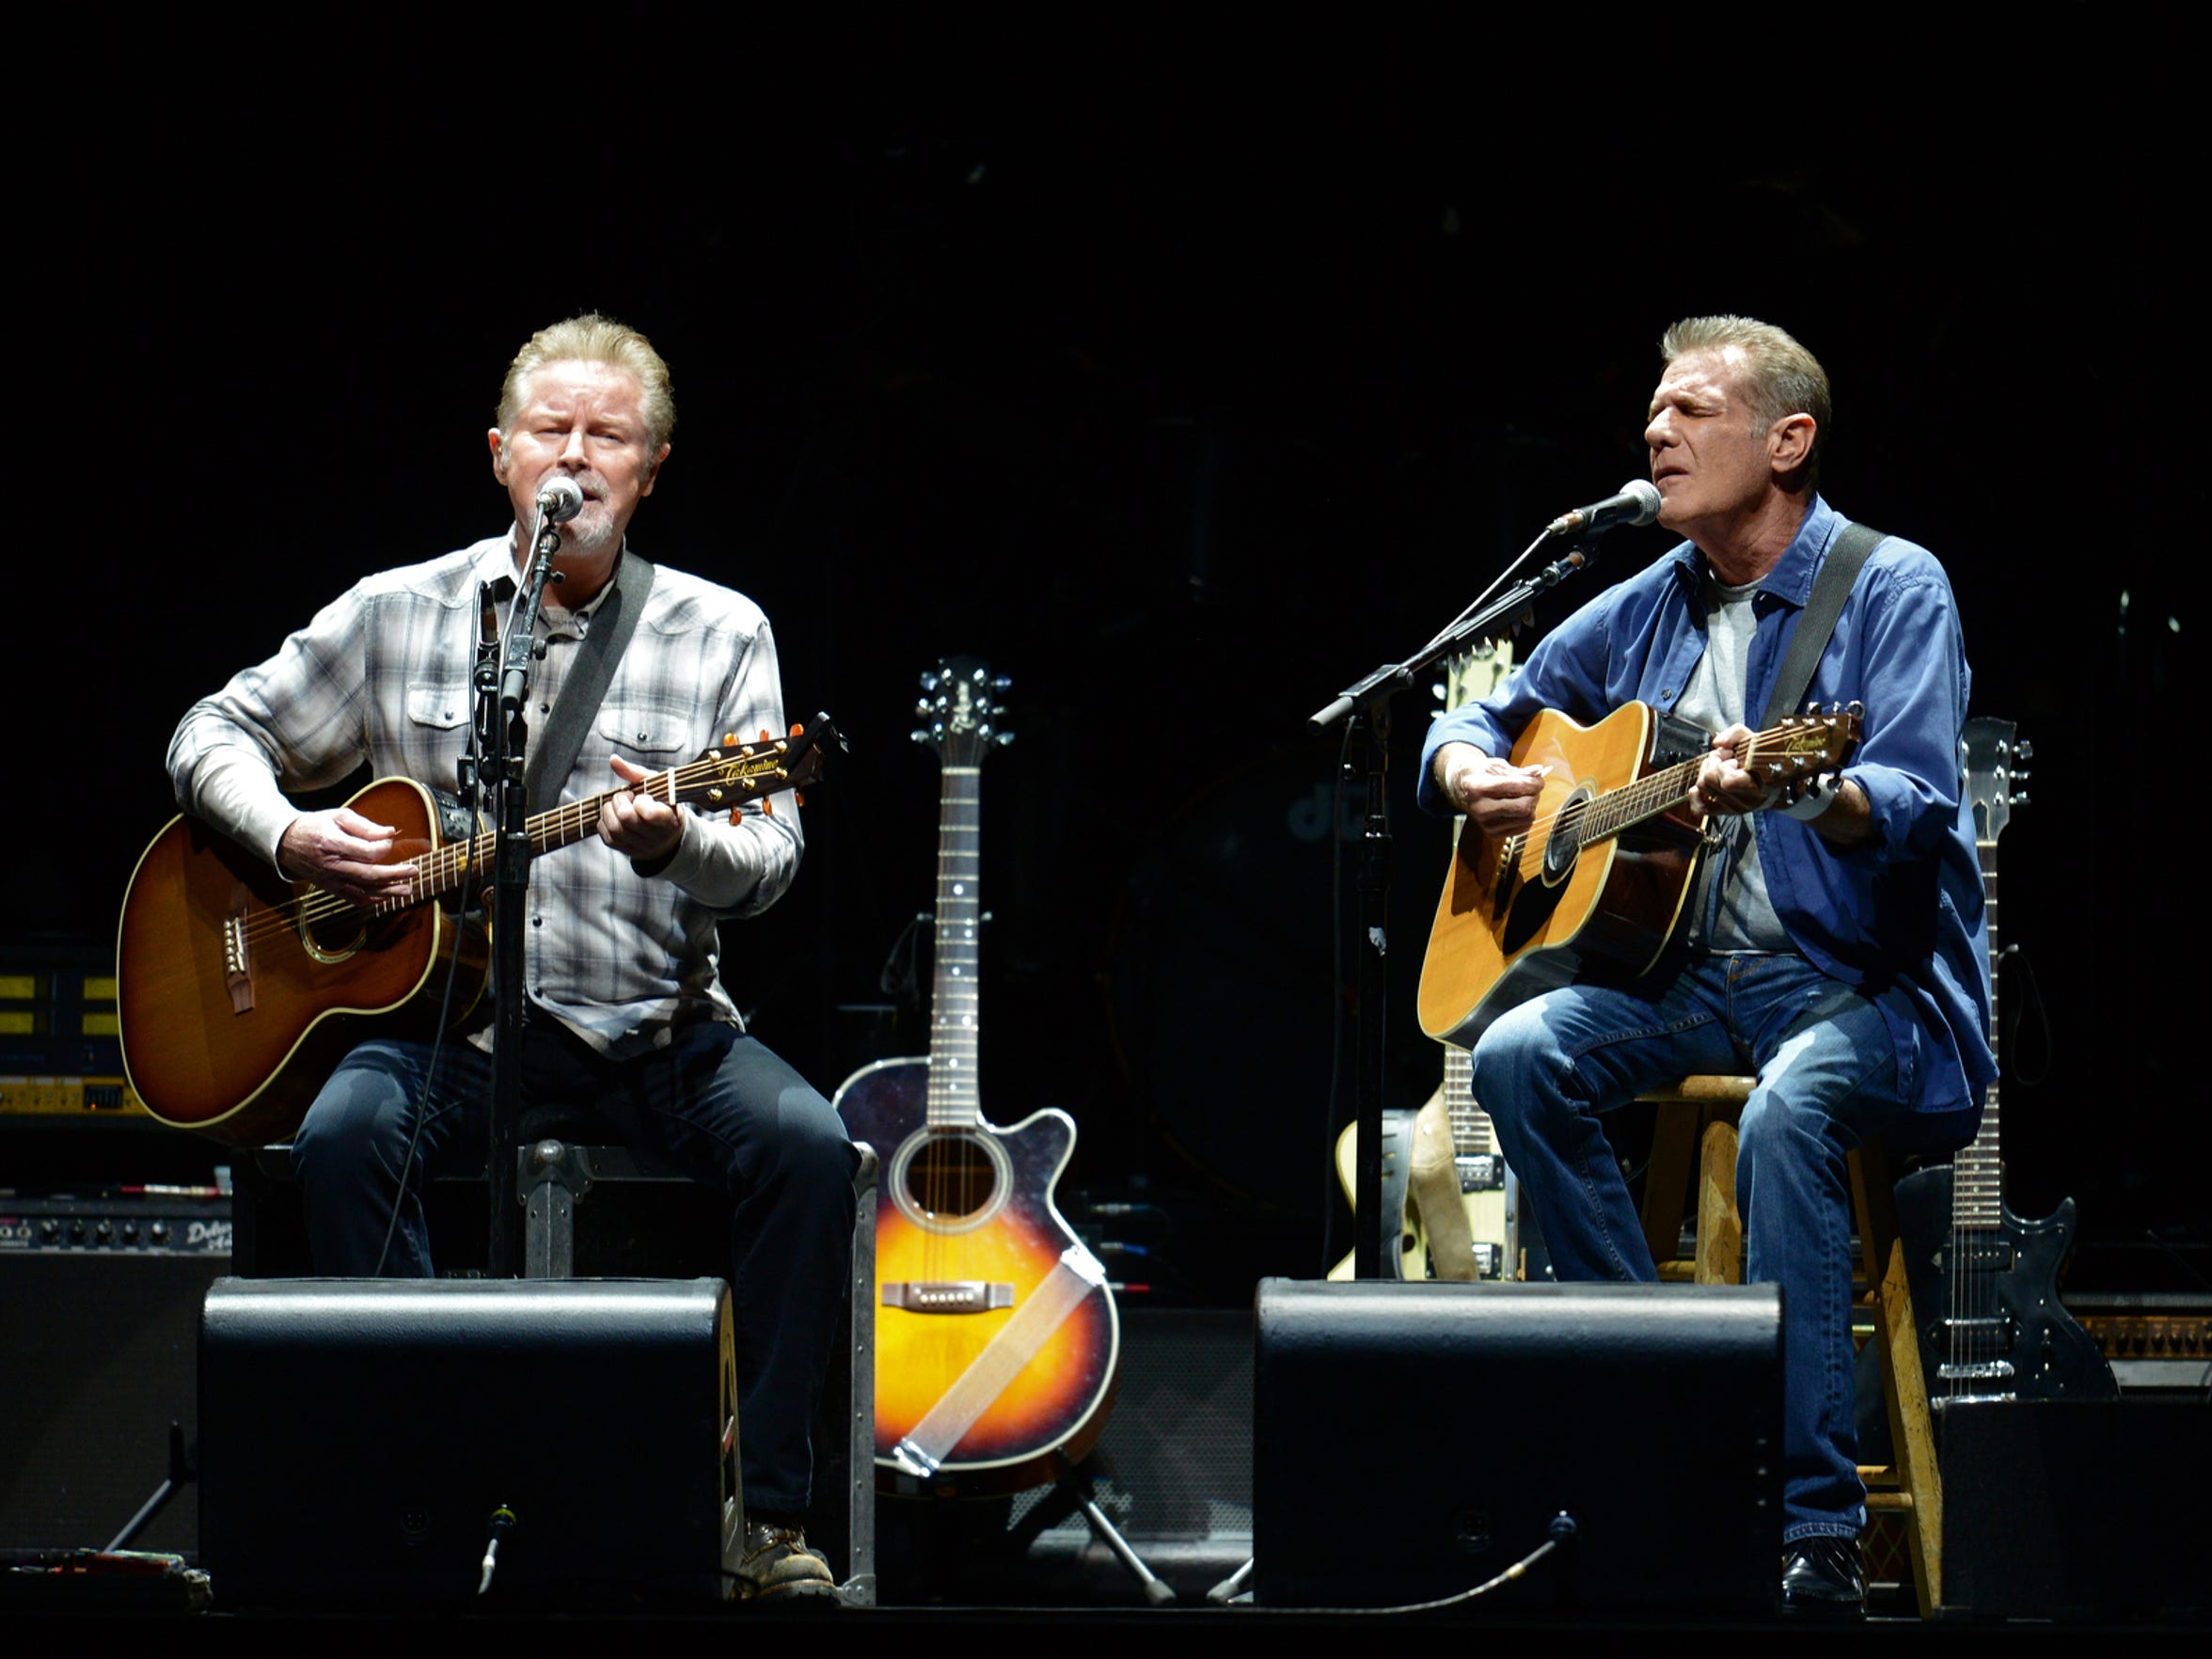 Don Henley, left, and Glenn Frey of the Eagles perform